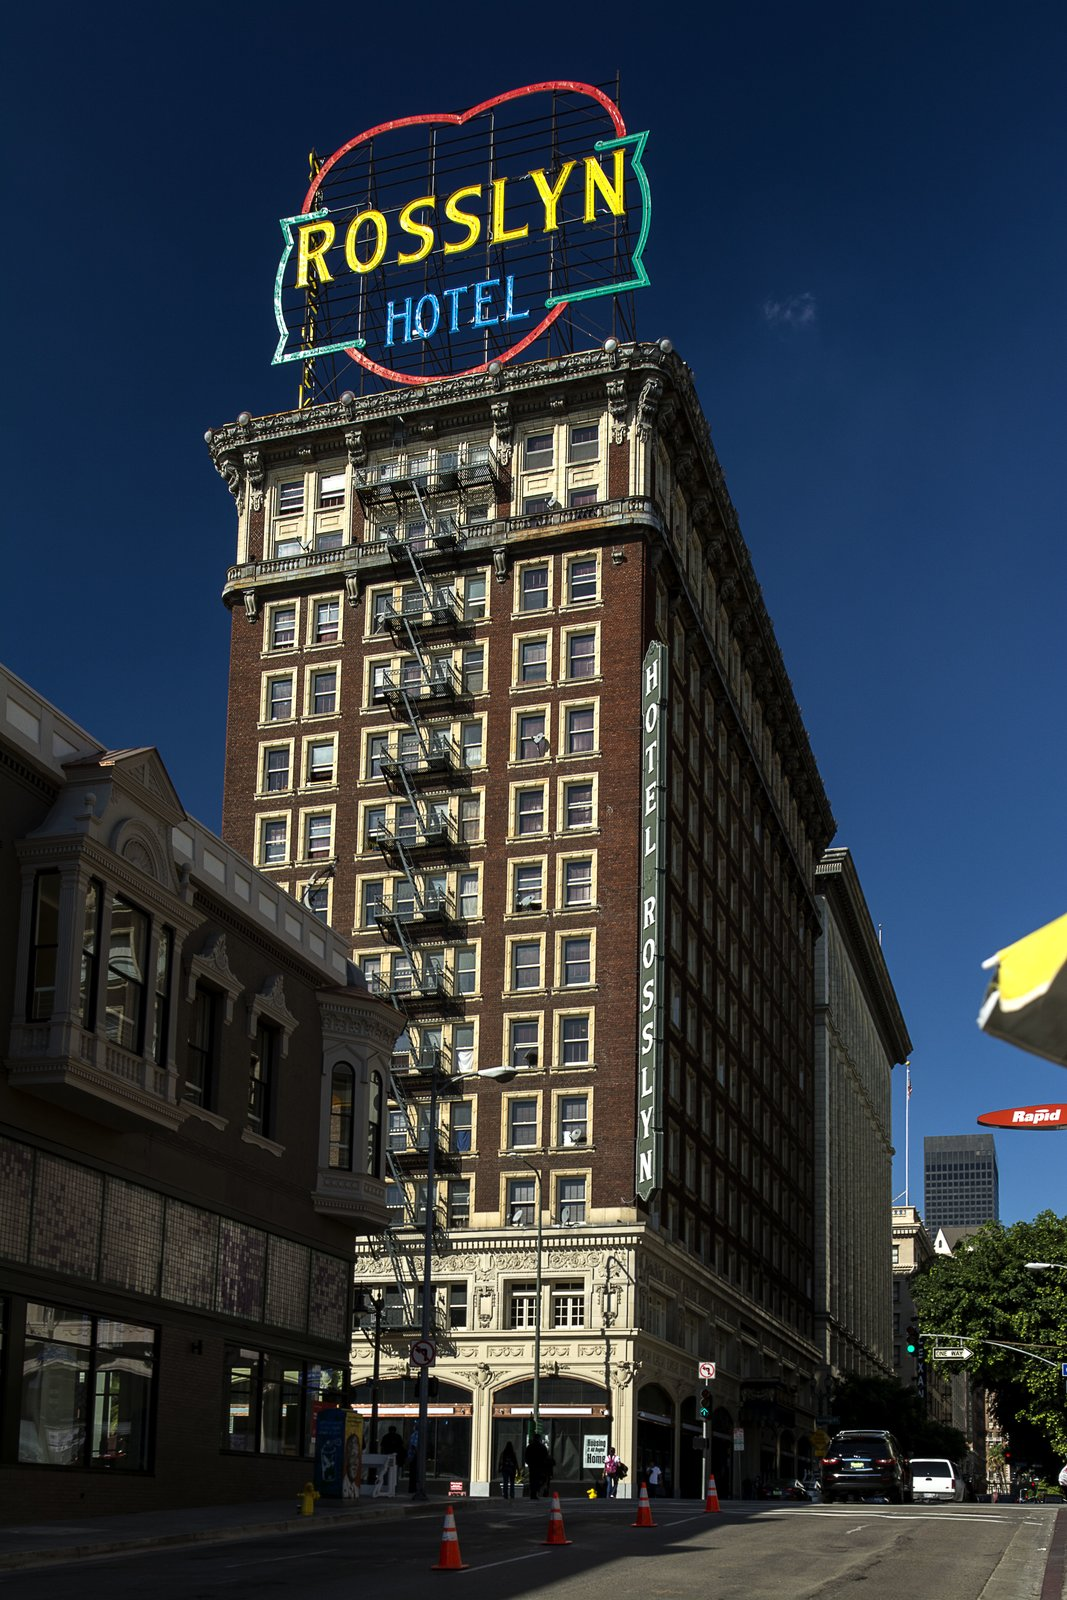 The former luxury hotel, Rosslyn Hotel Apartments, opened its doors on Fifth and Main in Downtown L.A. in 1923, and was once one of the largest luxury hotels on the West Coast. The Beaux Arts building now provides homes and services for people in need, using preservation as a tool to integrate affordable housing into market-rate neighborhoods.  Photo 6 of 7 in 7 Preserved Modern Architecture Icons in Los Angeles